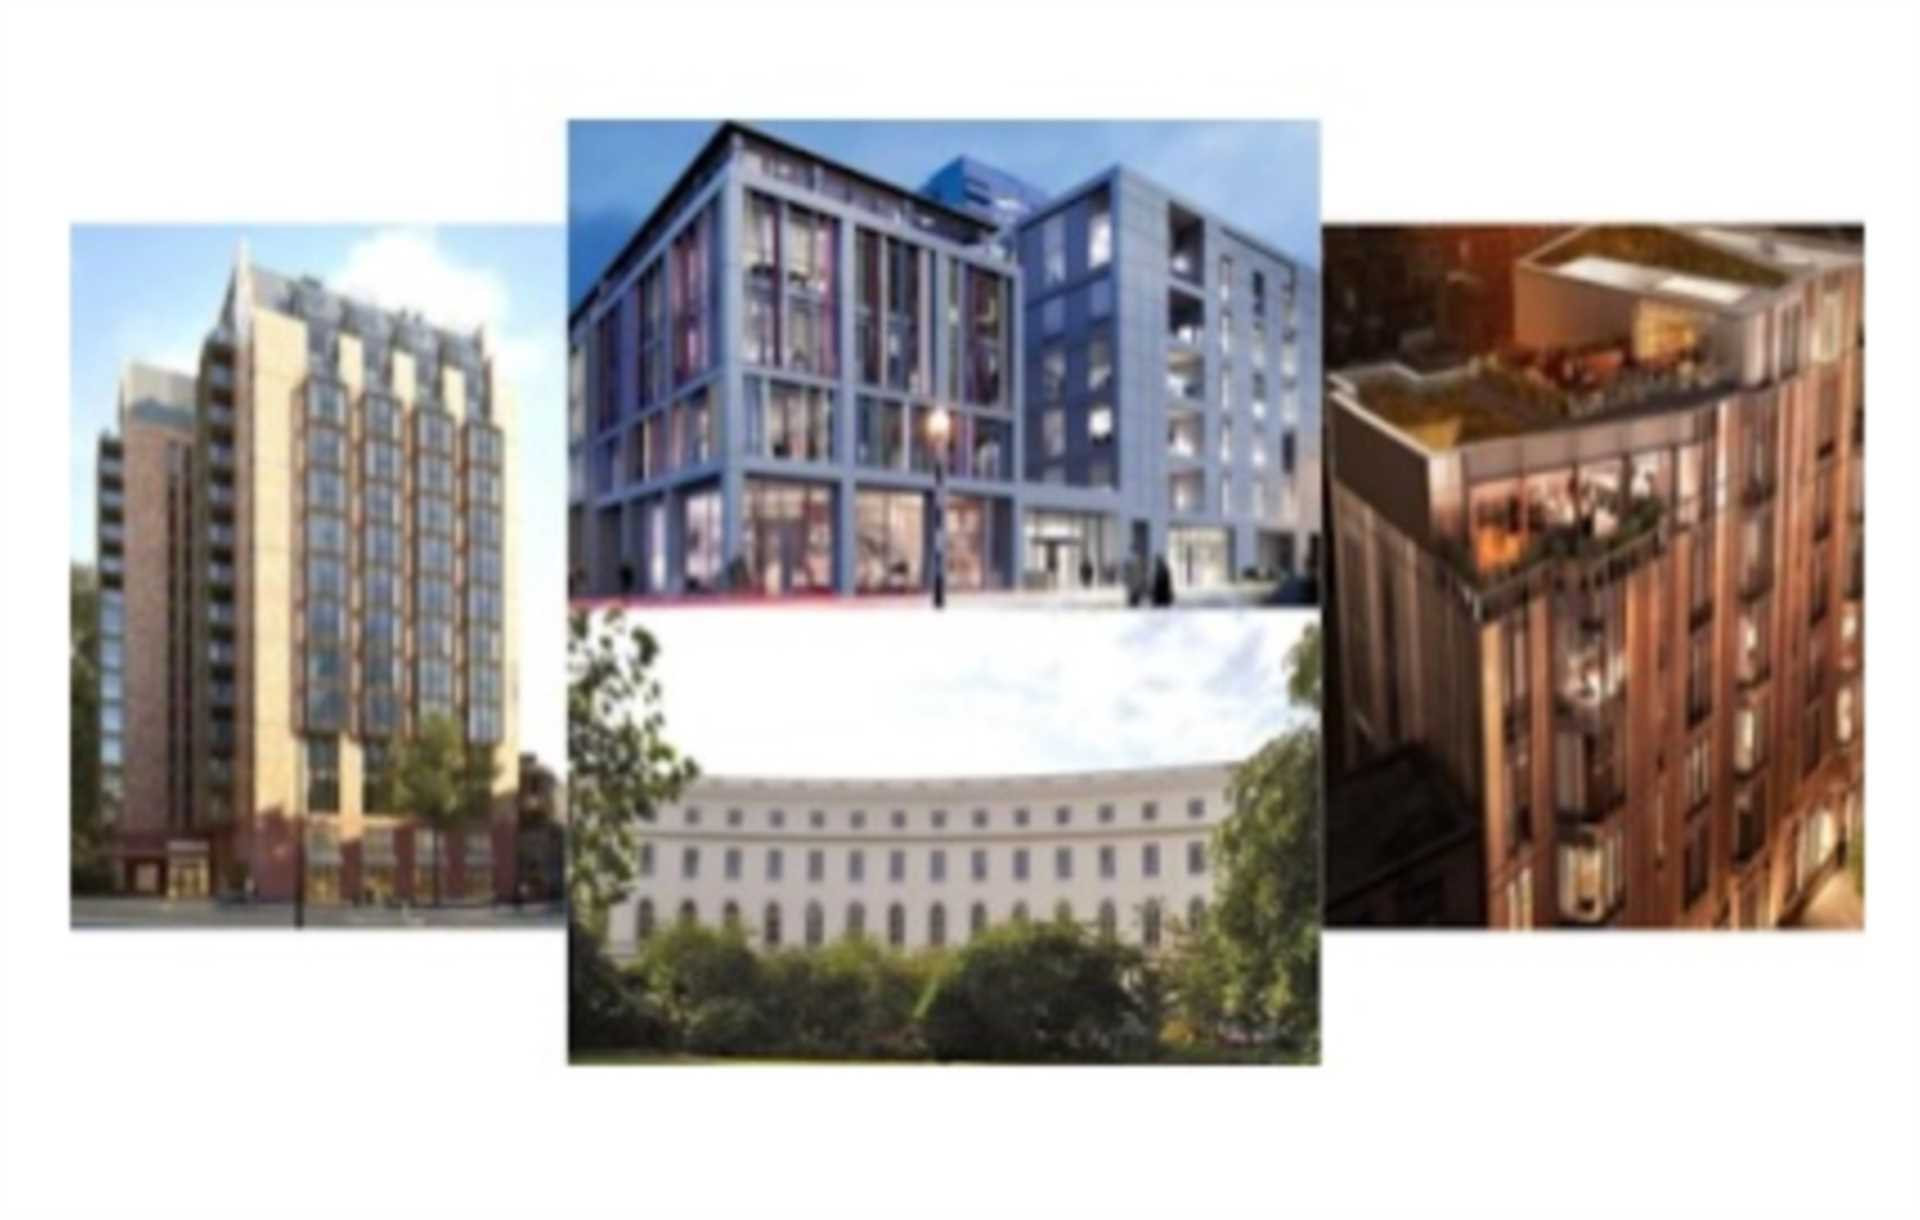 New homes and developments in Marylebone! Let`s check out the 2 and 3 bedroom properties in these new-builds, how much are they currently available for and what sort of square footages should we be expecting?